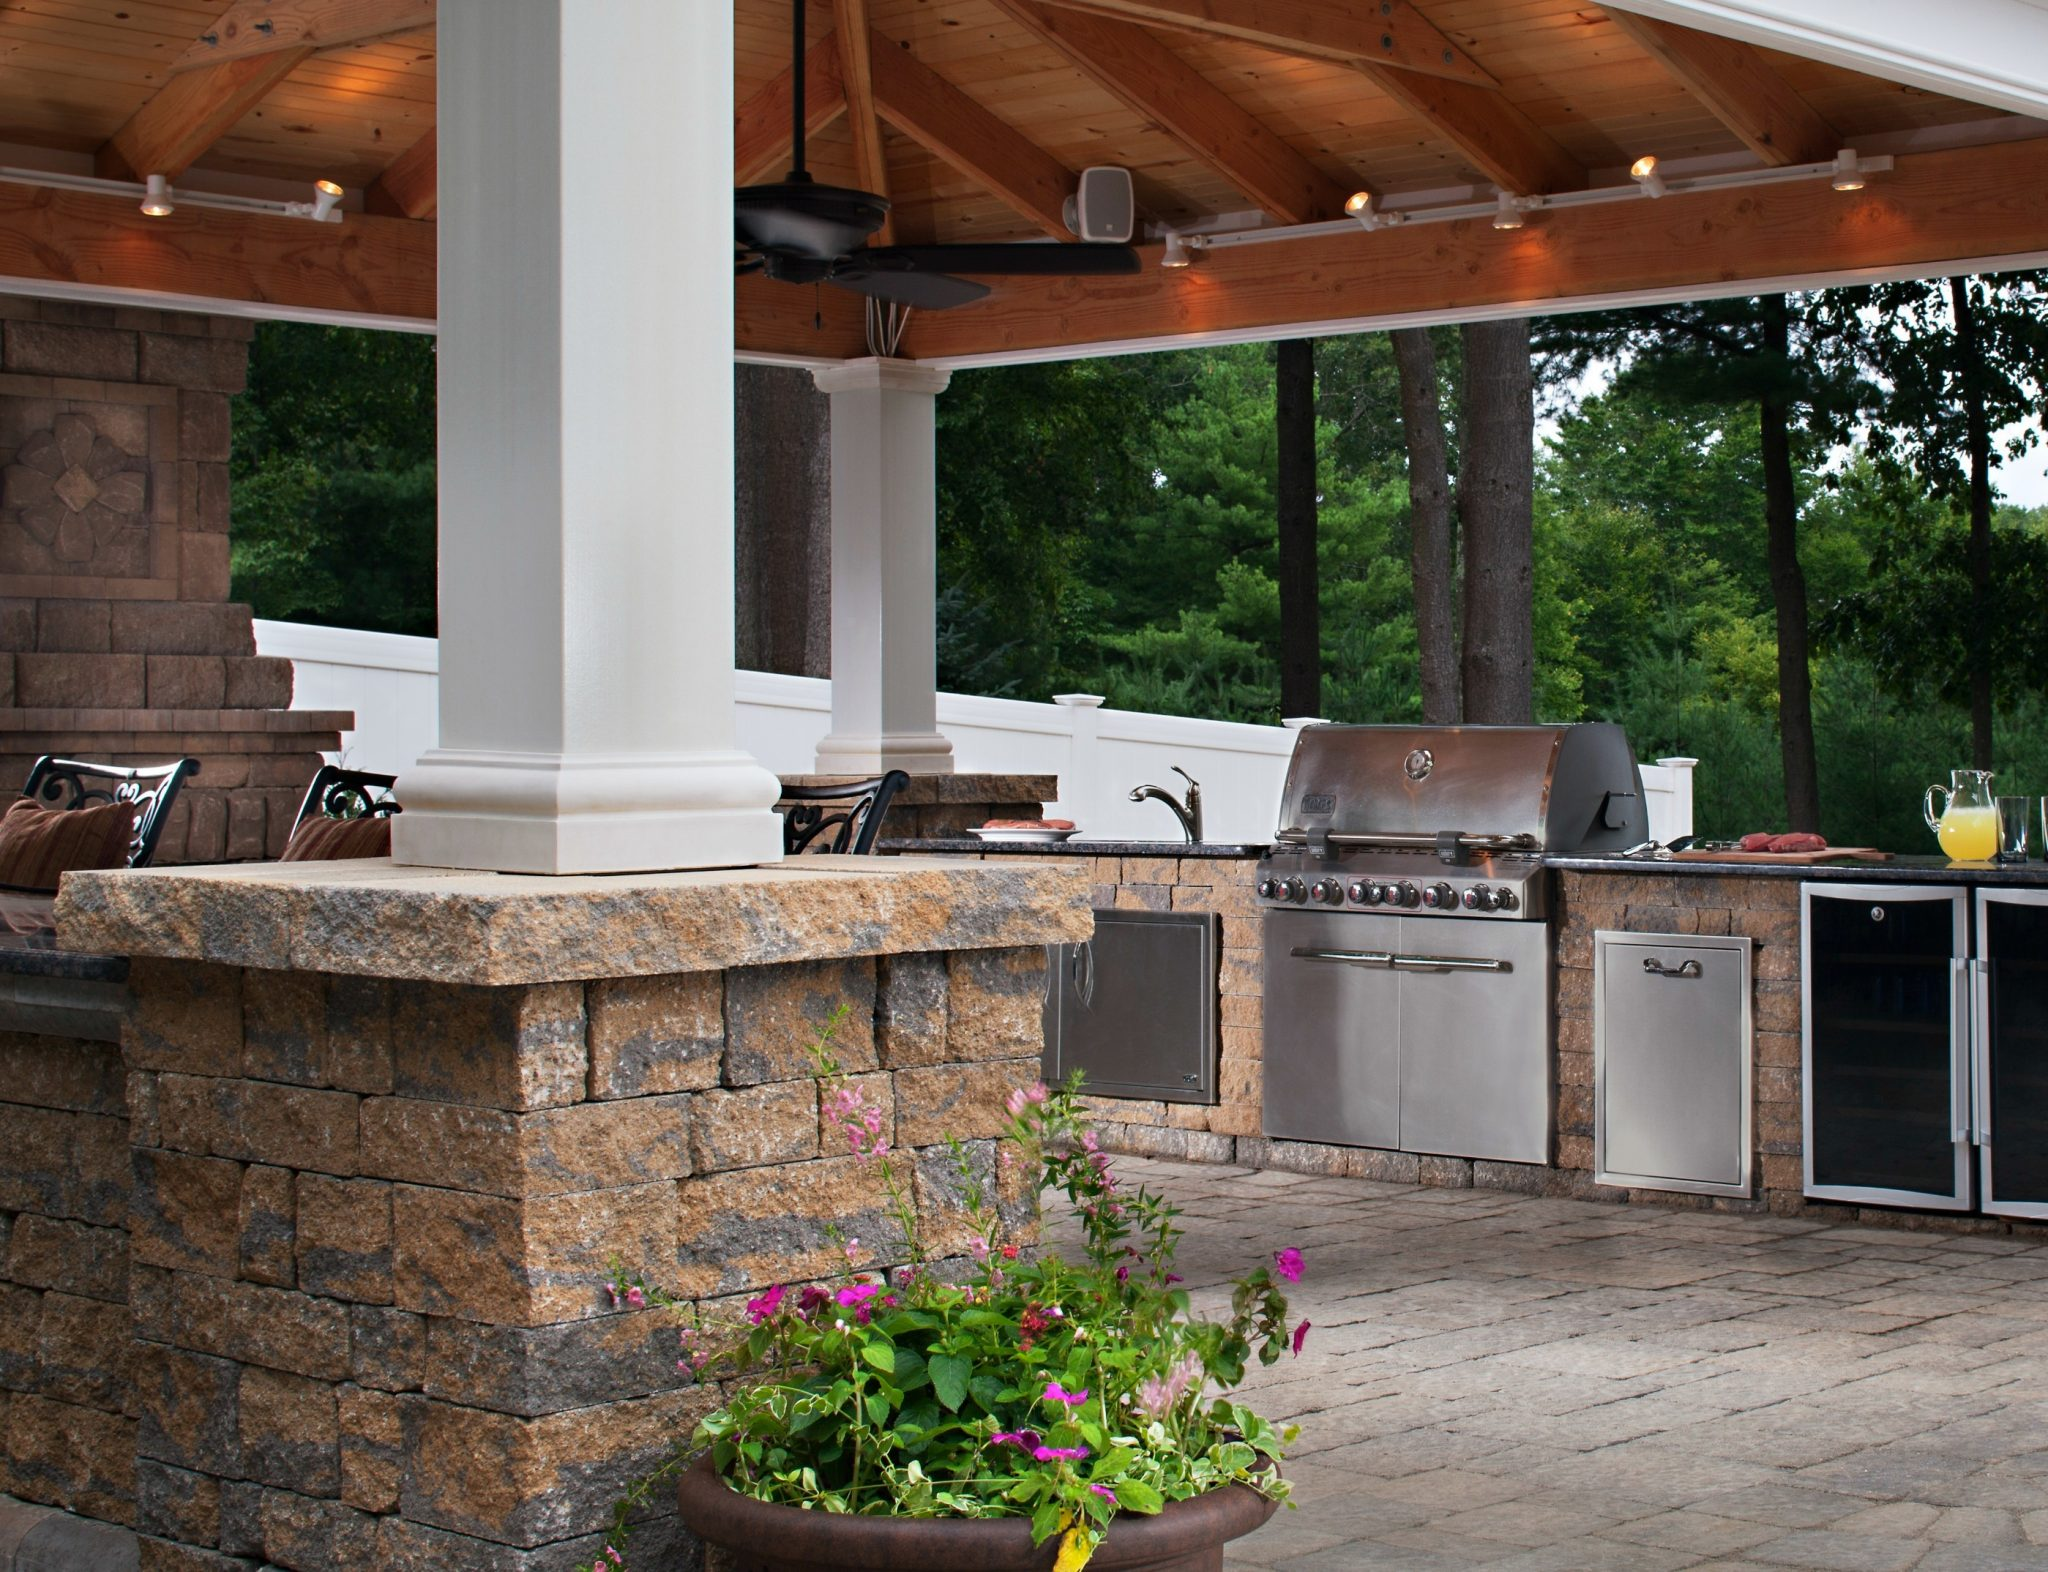 Outdoor Kitchen Trends: 9 HOT Ideas For Your Backyard | INSTALL-IT ...